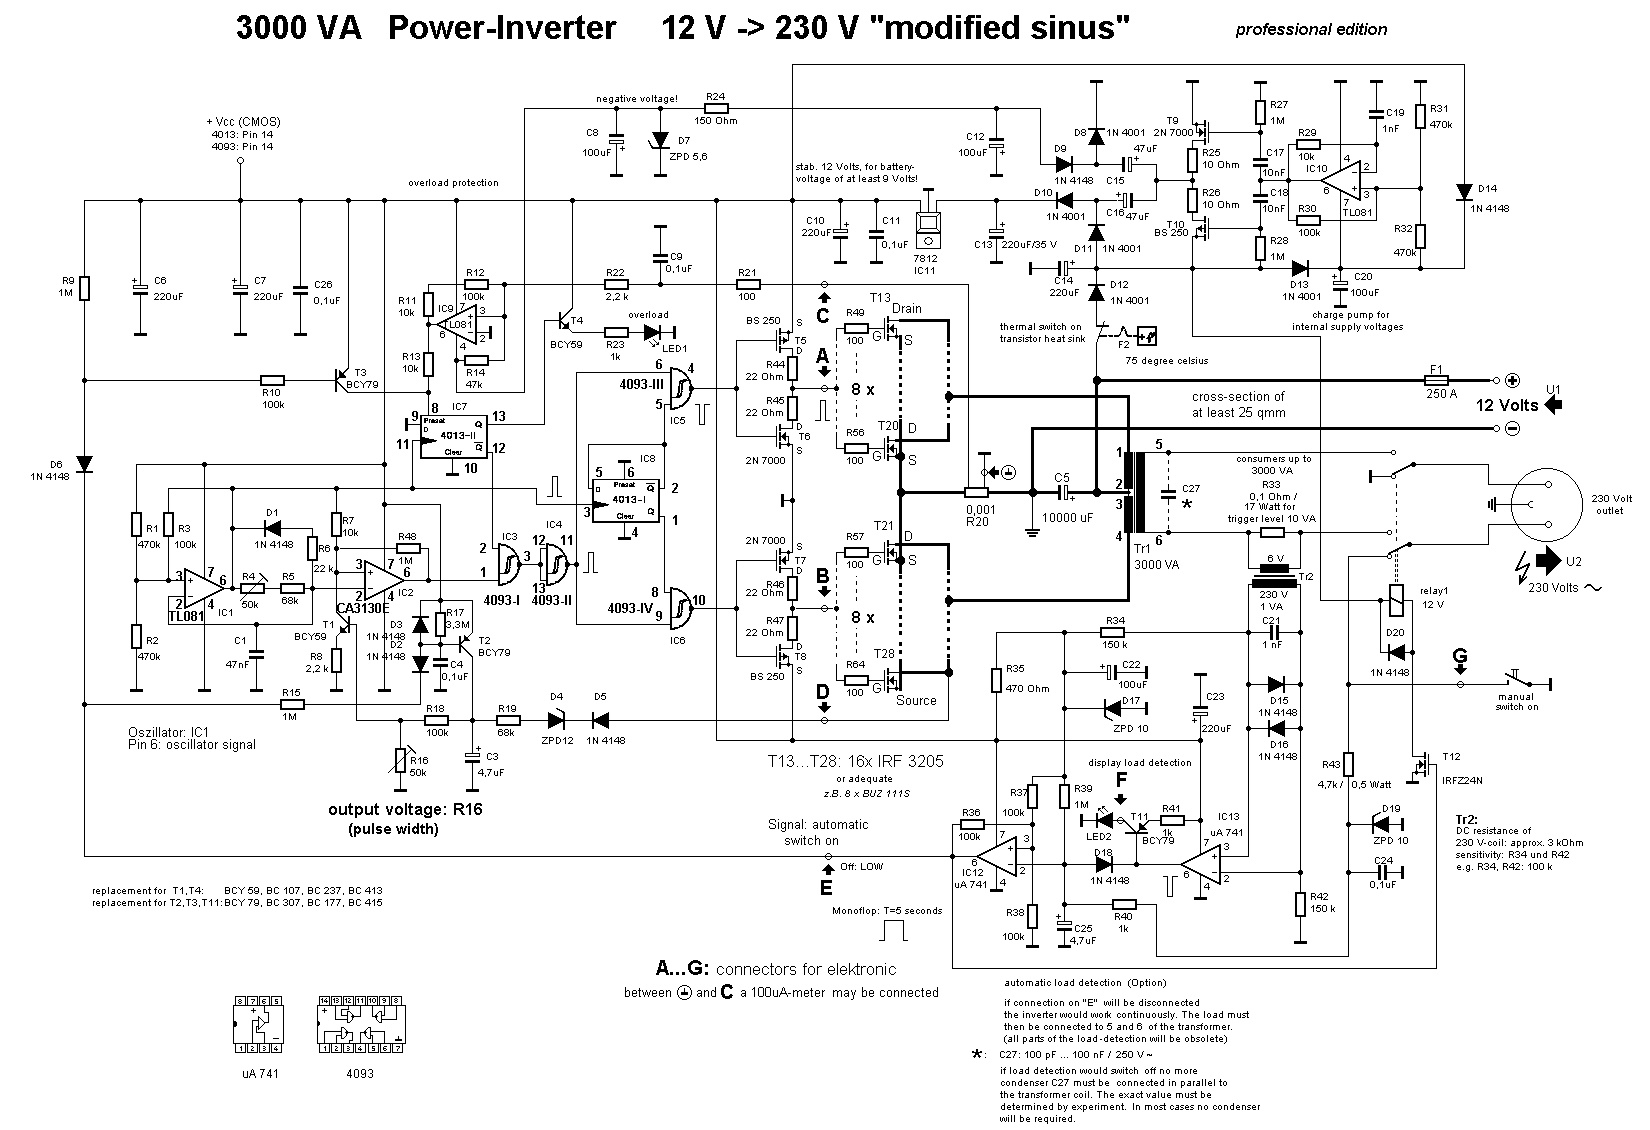 3000W Power Inverter 12V to 230V Scheme. This is the circuit diagram ...